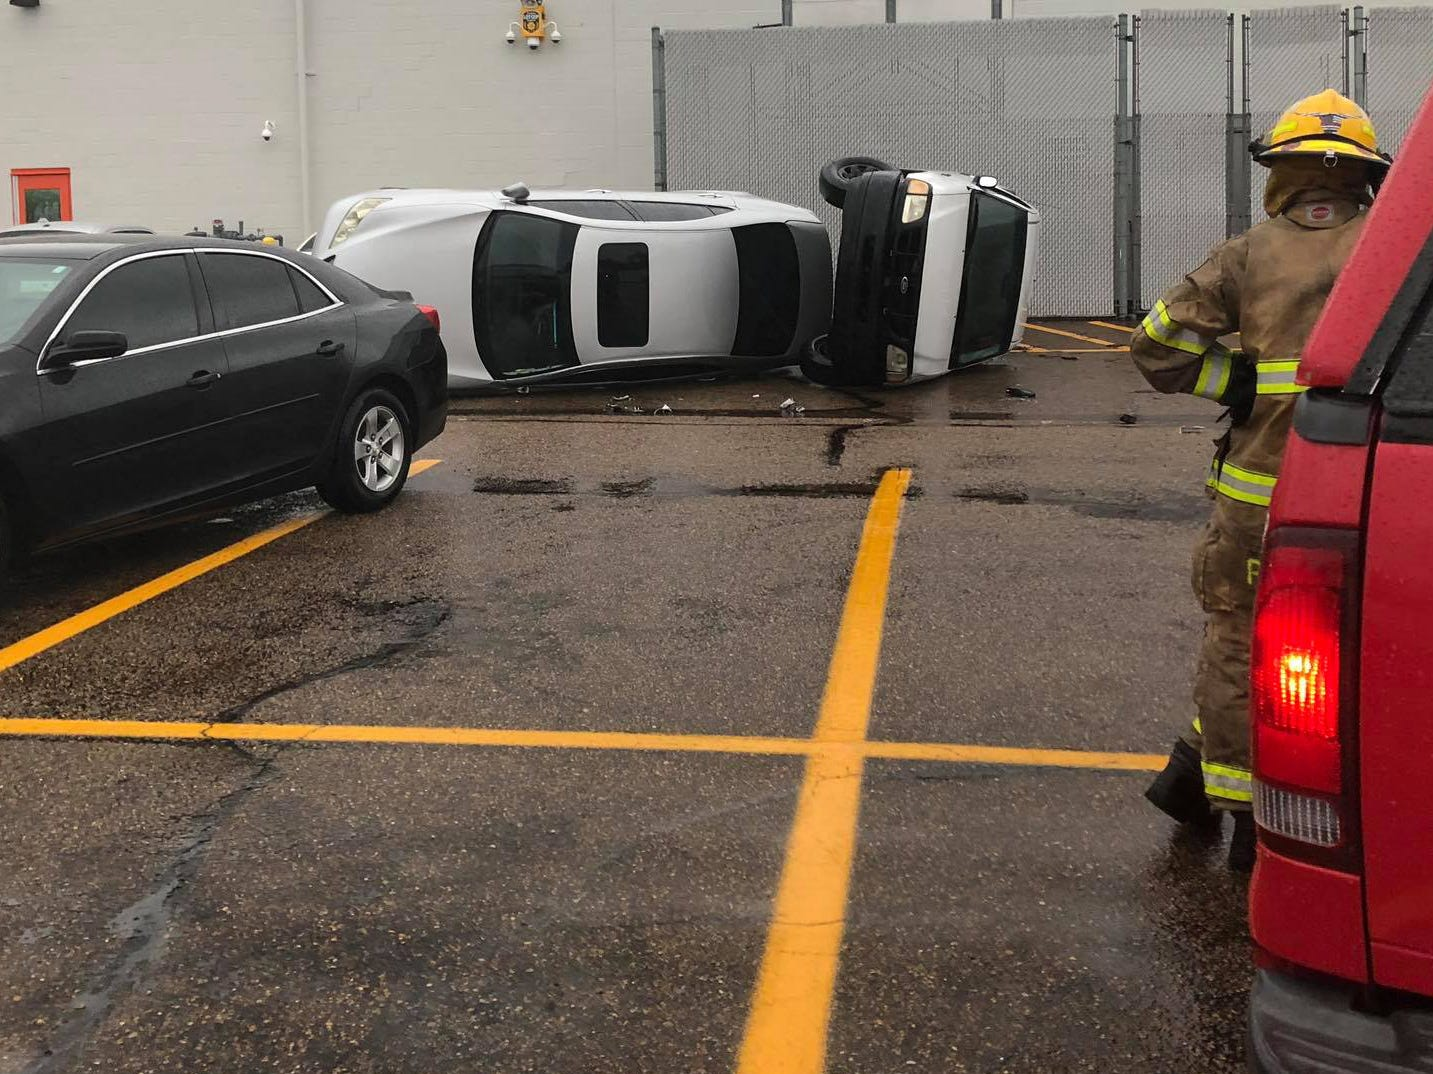 A car and truck were flipped in the parking lot of Walmart in Clinton, Miss. during severe weather Thursday afternoon.